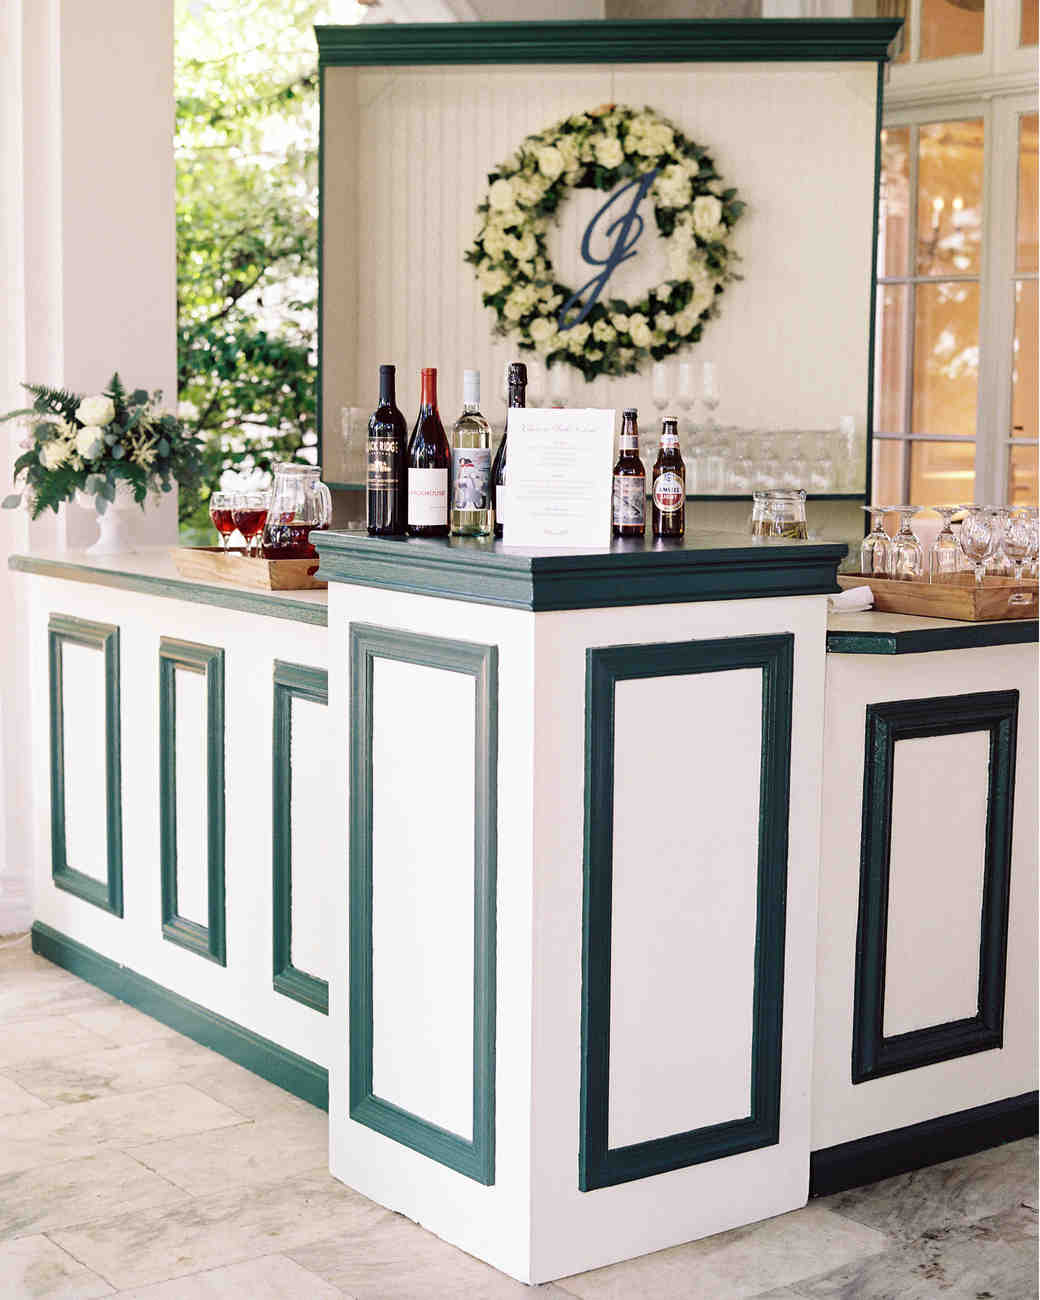 Why You Should Hire a Mixologist for Your Wedding